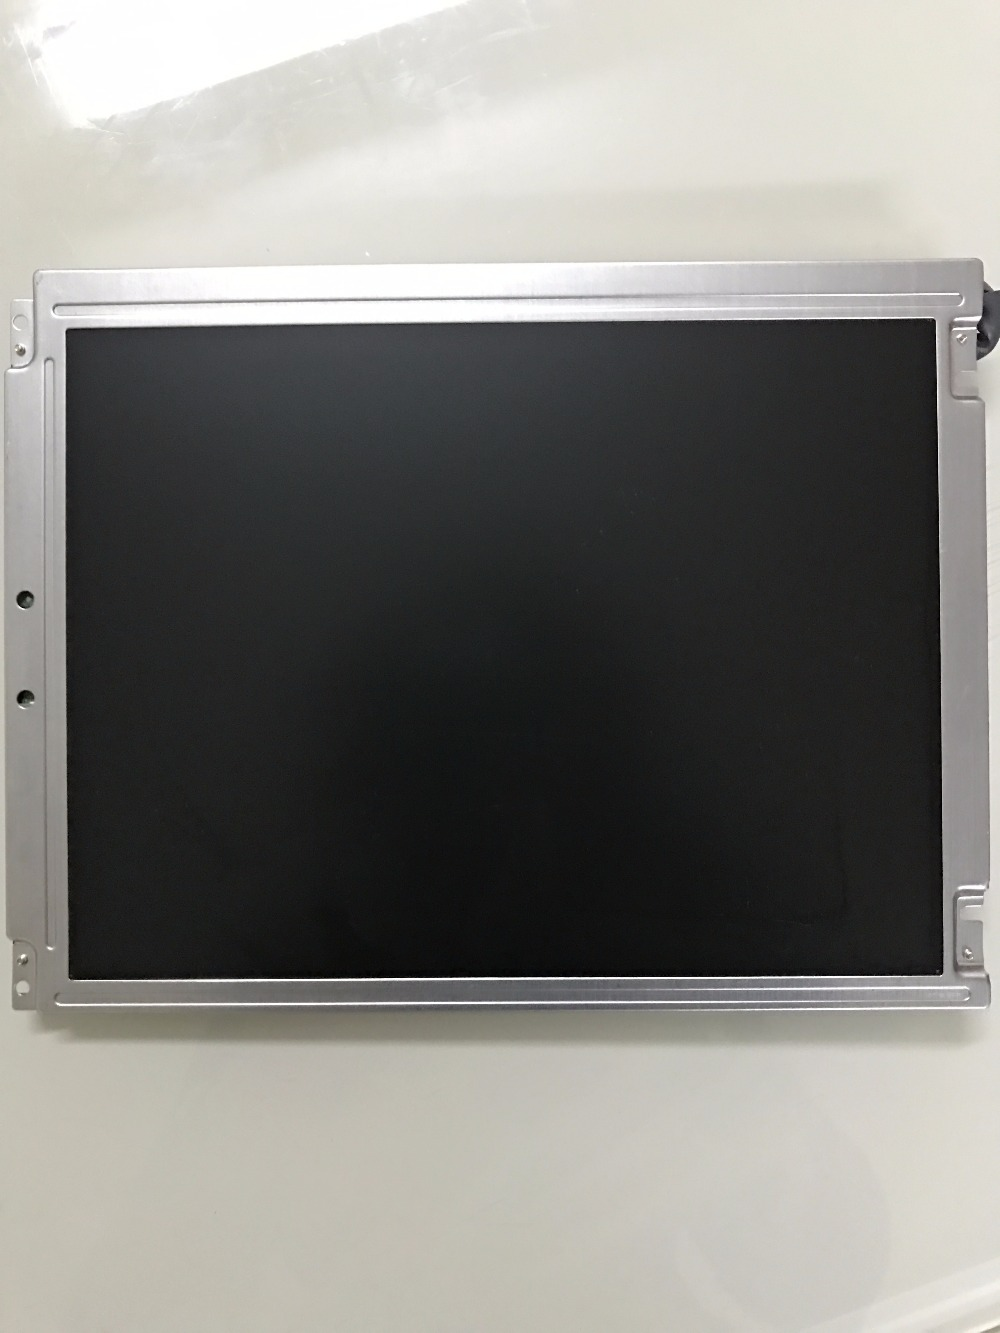 original new free shipping 10.4'' inch NL8060BC26-17 LCD screen with high voltage plate screen line in kind quality free shipping original l171 one board qlif 061 490521200100r send screen line 100